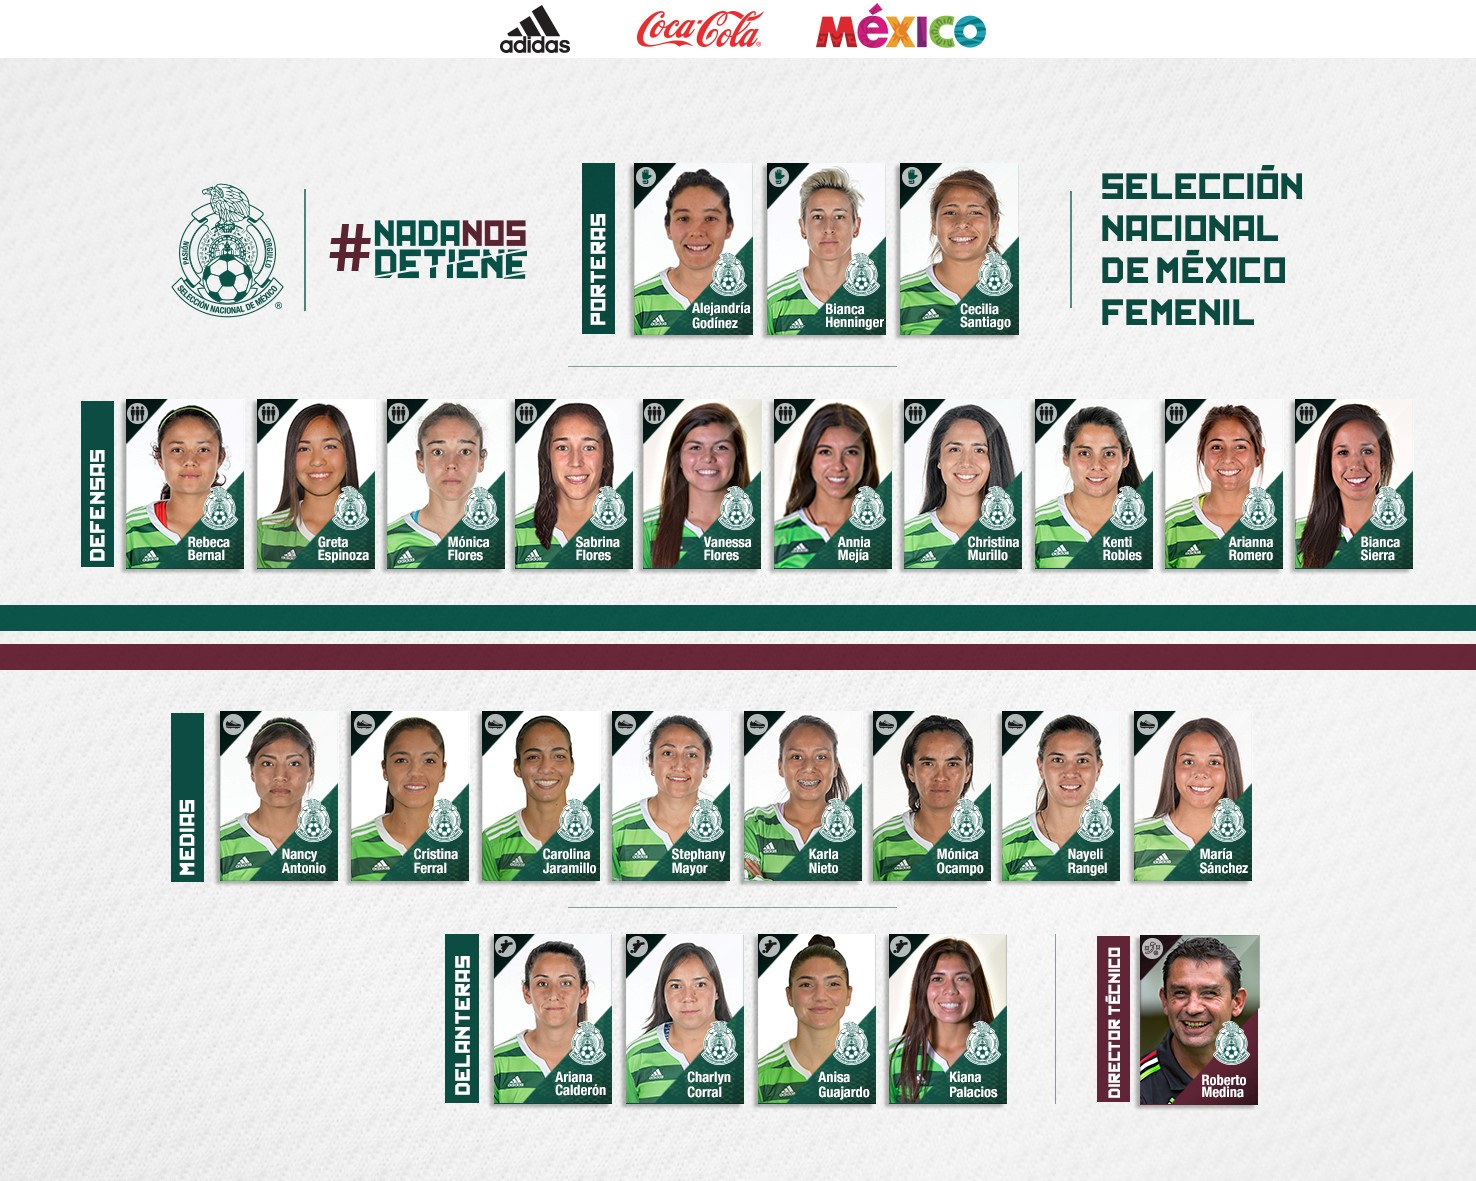 miseleccion.mx centro